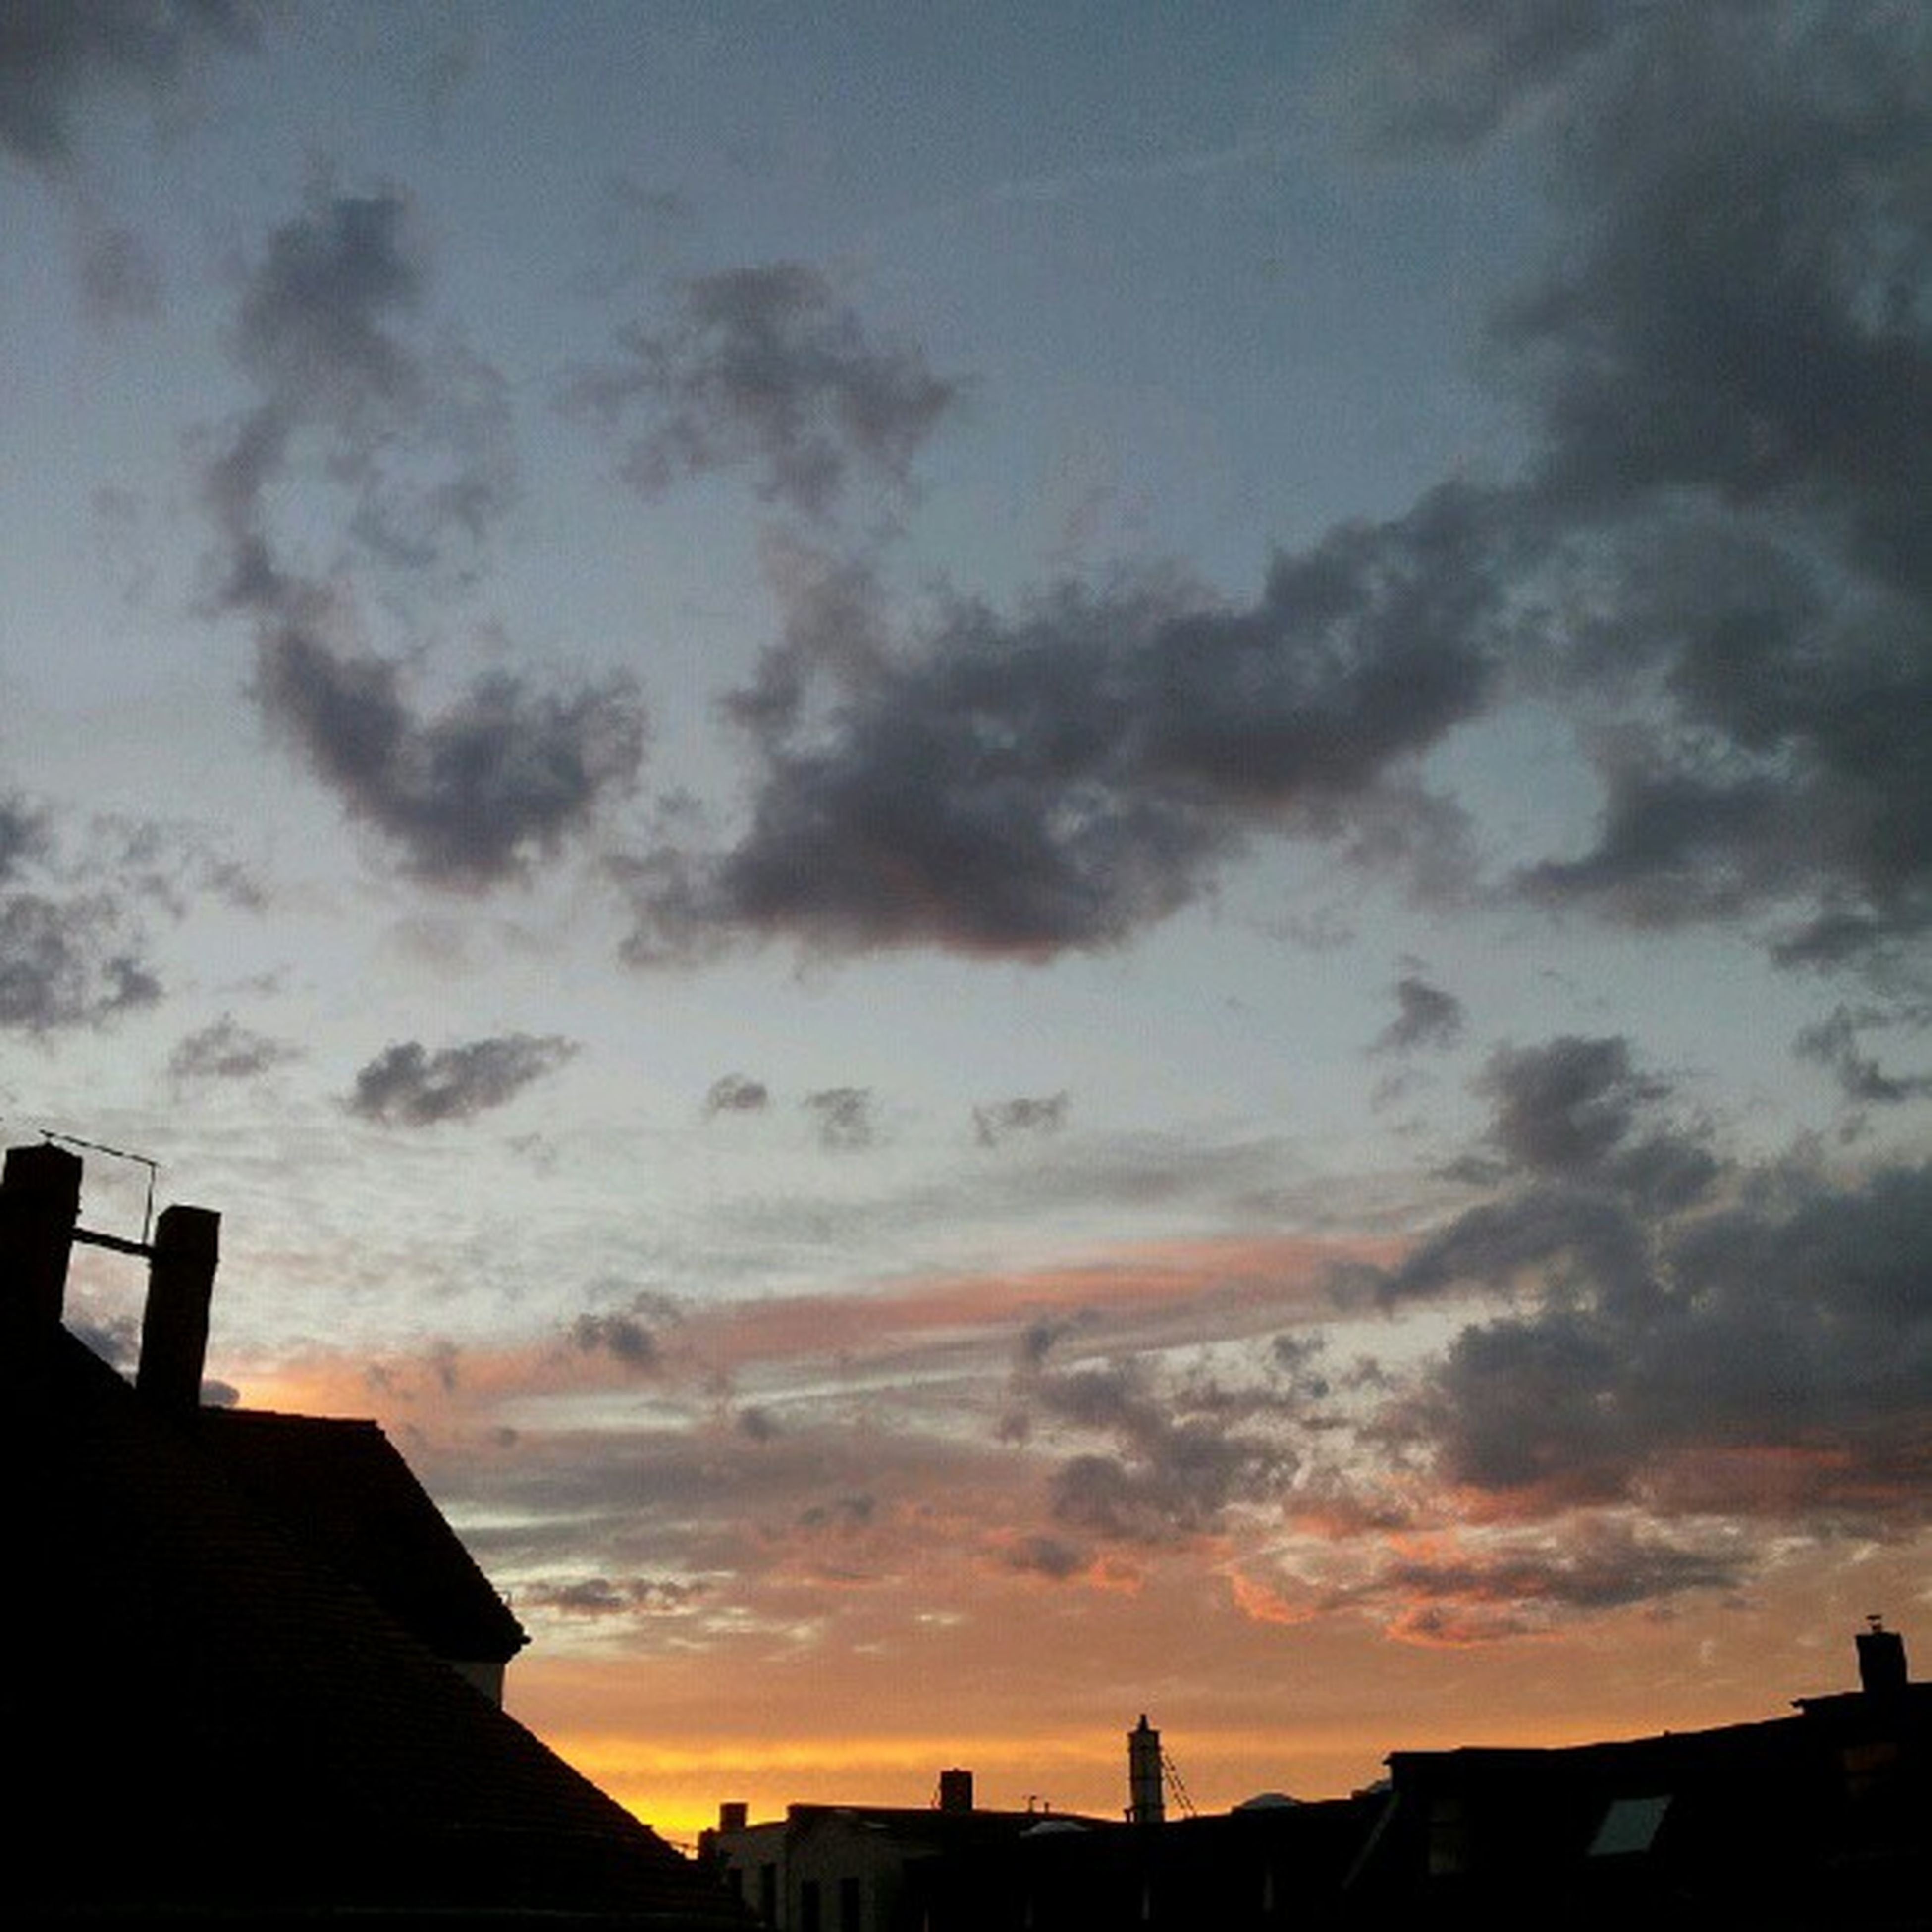 building exterior, architecture, built structure, sunset, silhouette, sky, cloud - sky, low angle view, city, cloudy, cloud, residential structure, house, building, residential building, dusk, high section, orange color, outdoors, dramatic sky